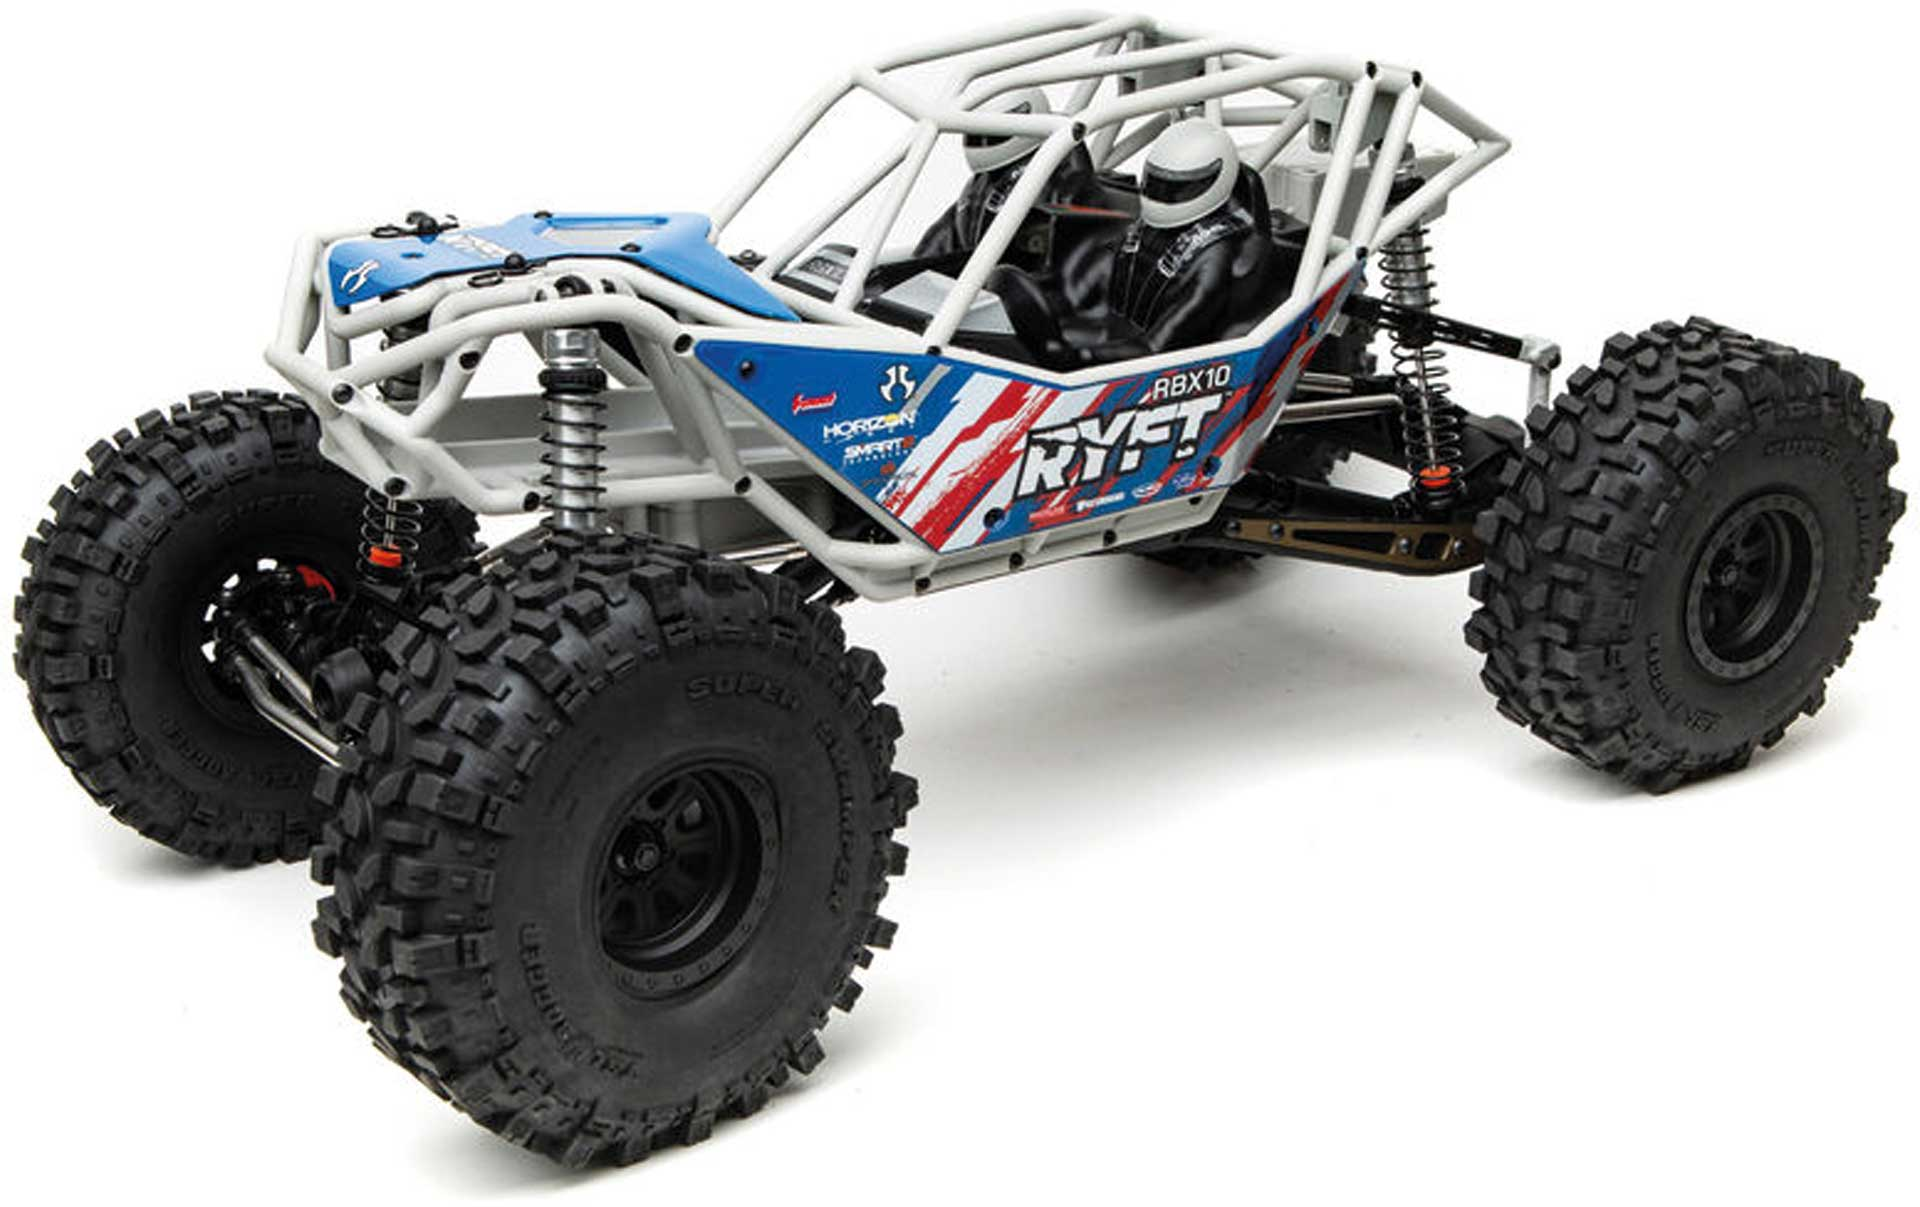 AXIAL RBX10 Ryft 4WD Rock Bouncer Kit, Gray 1/10 EP